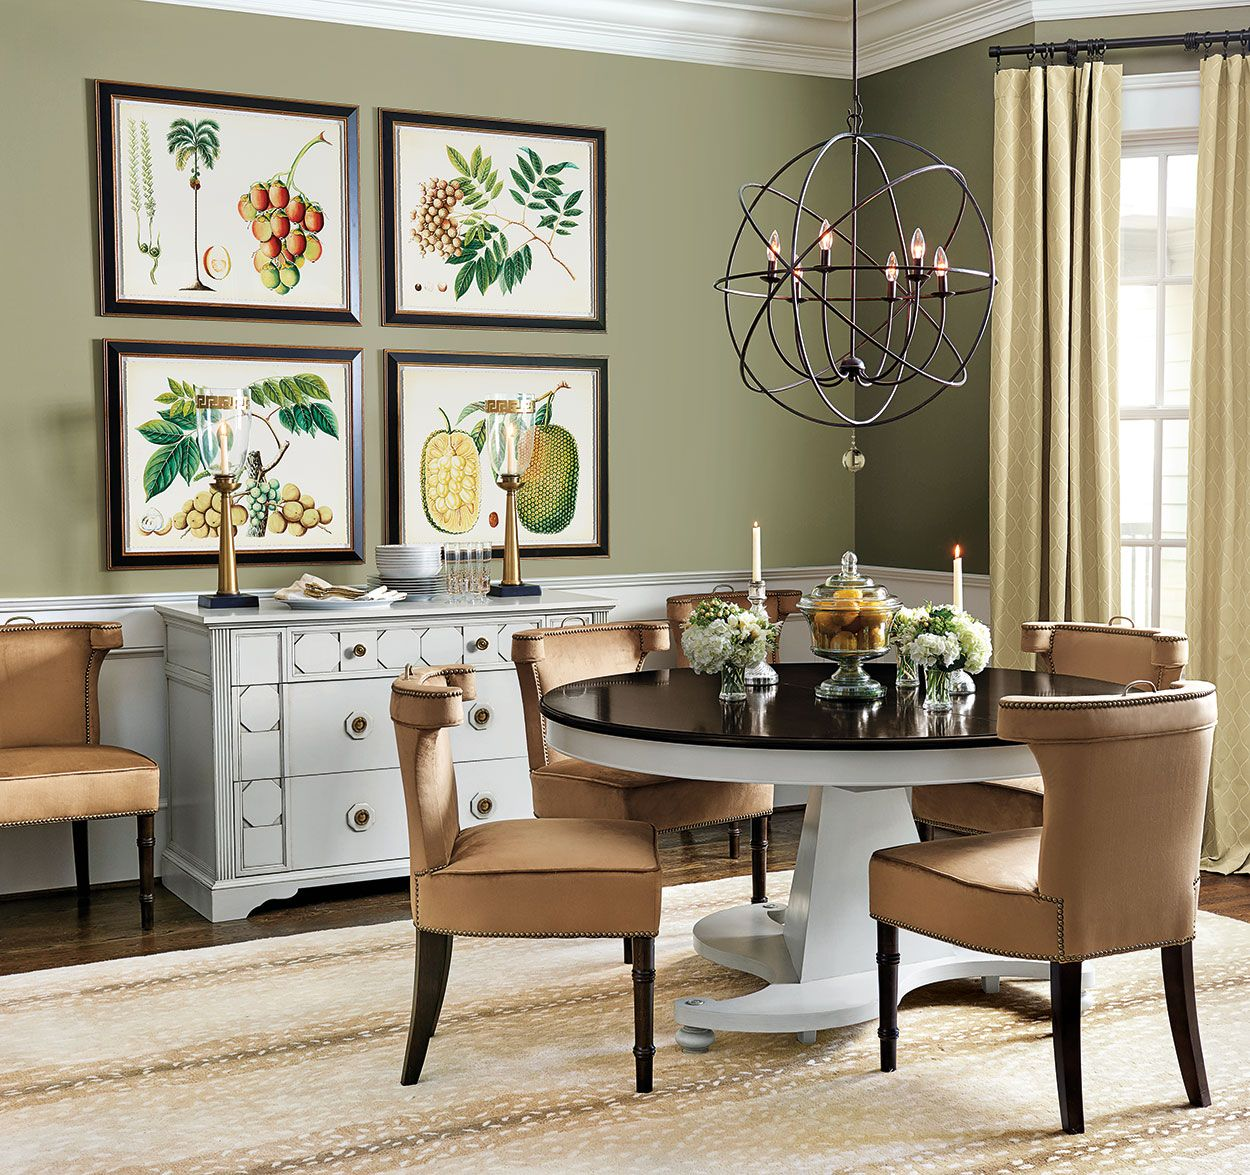 Dining Rooms Olive green walls, Green wall color and